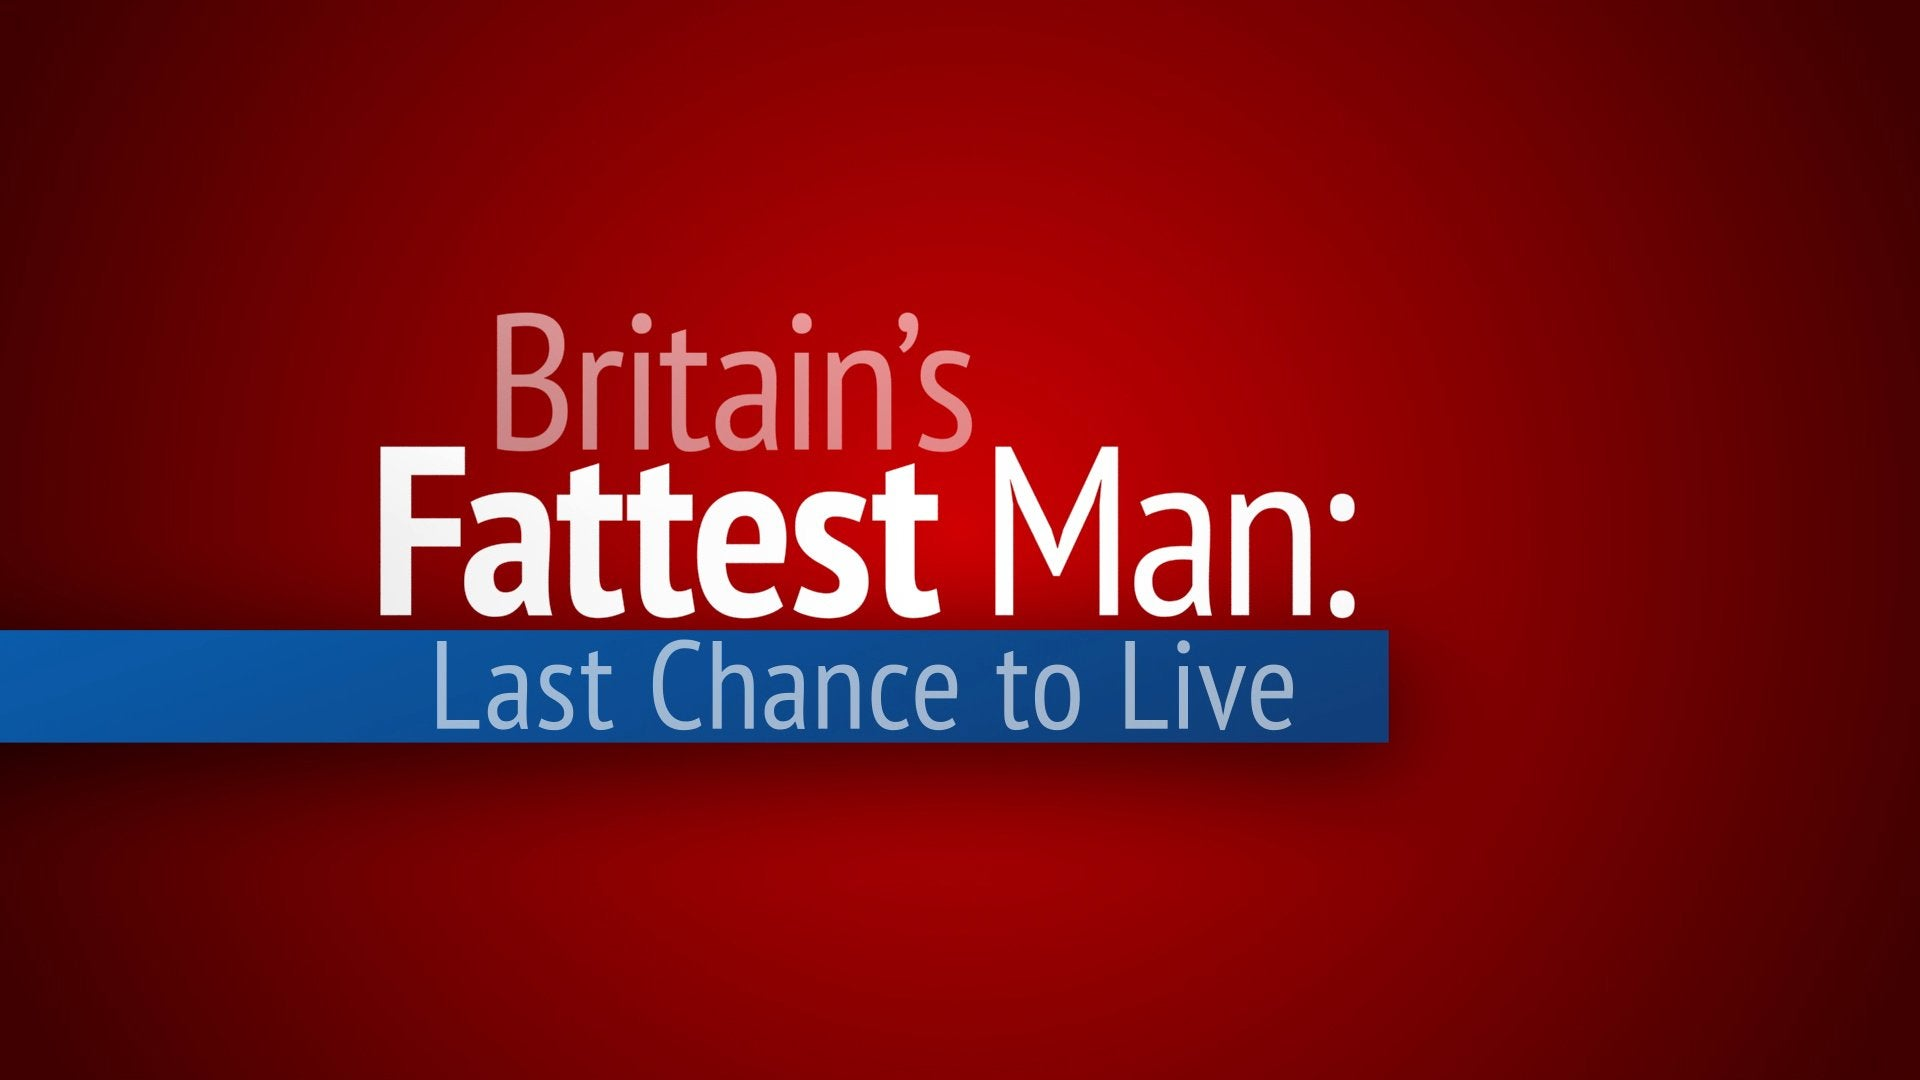 Britain's Fattest Man: Last Chance to Live